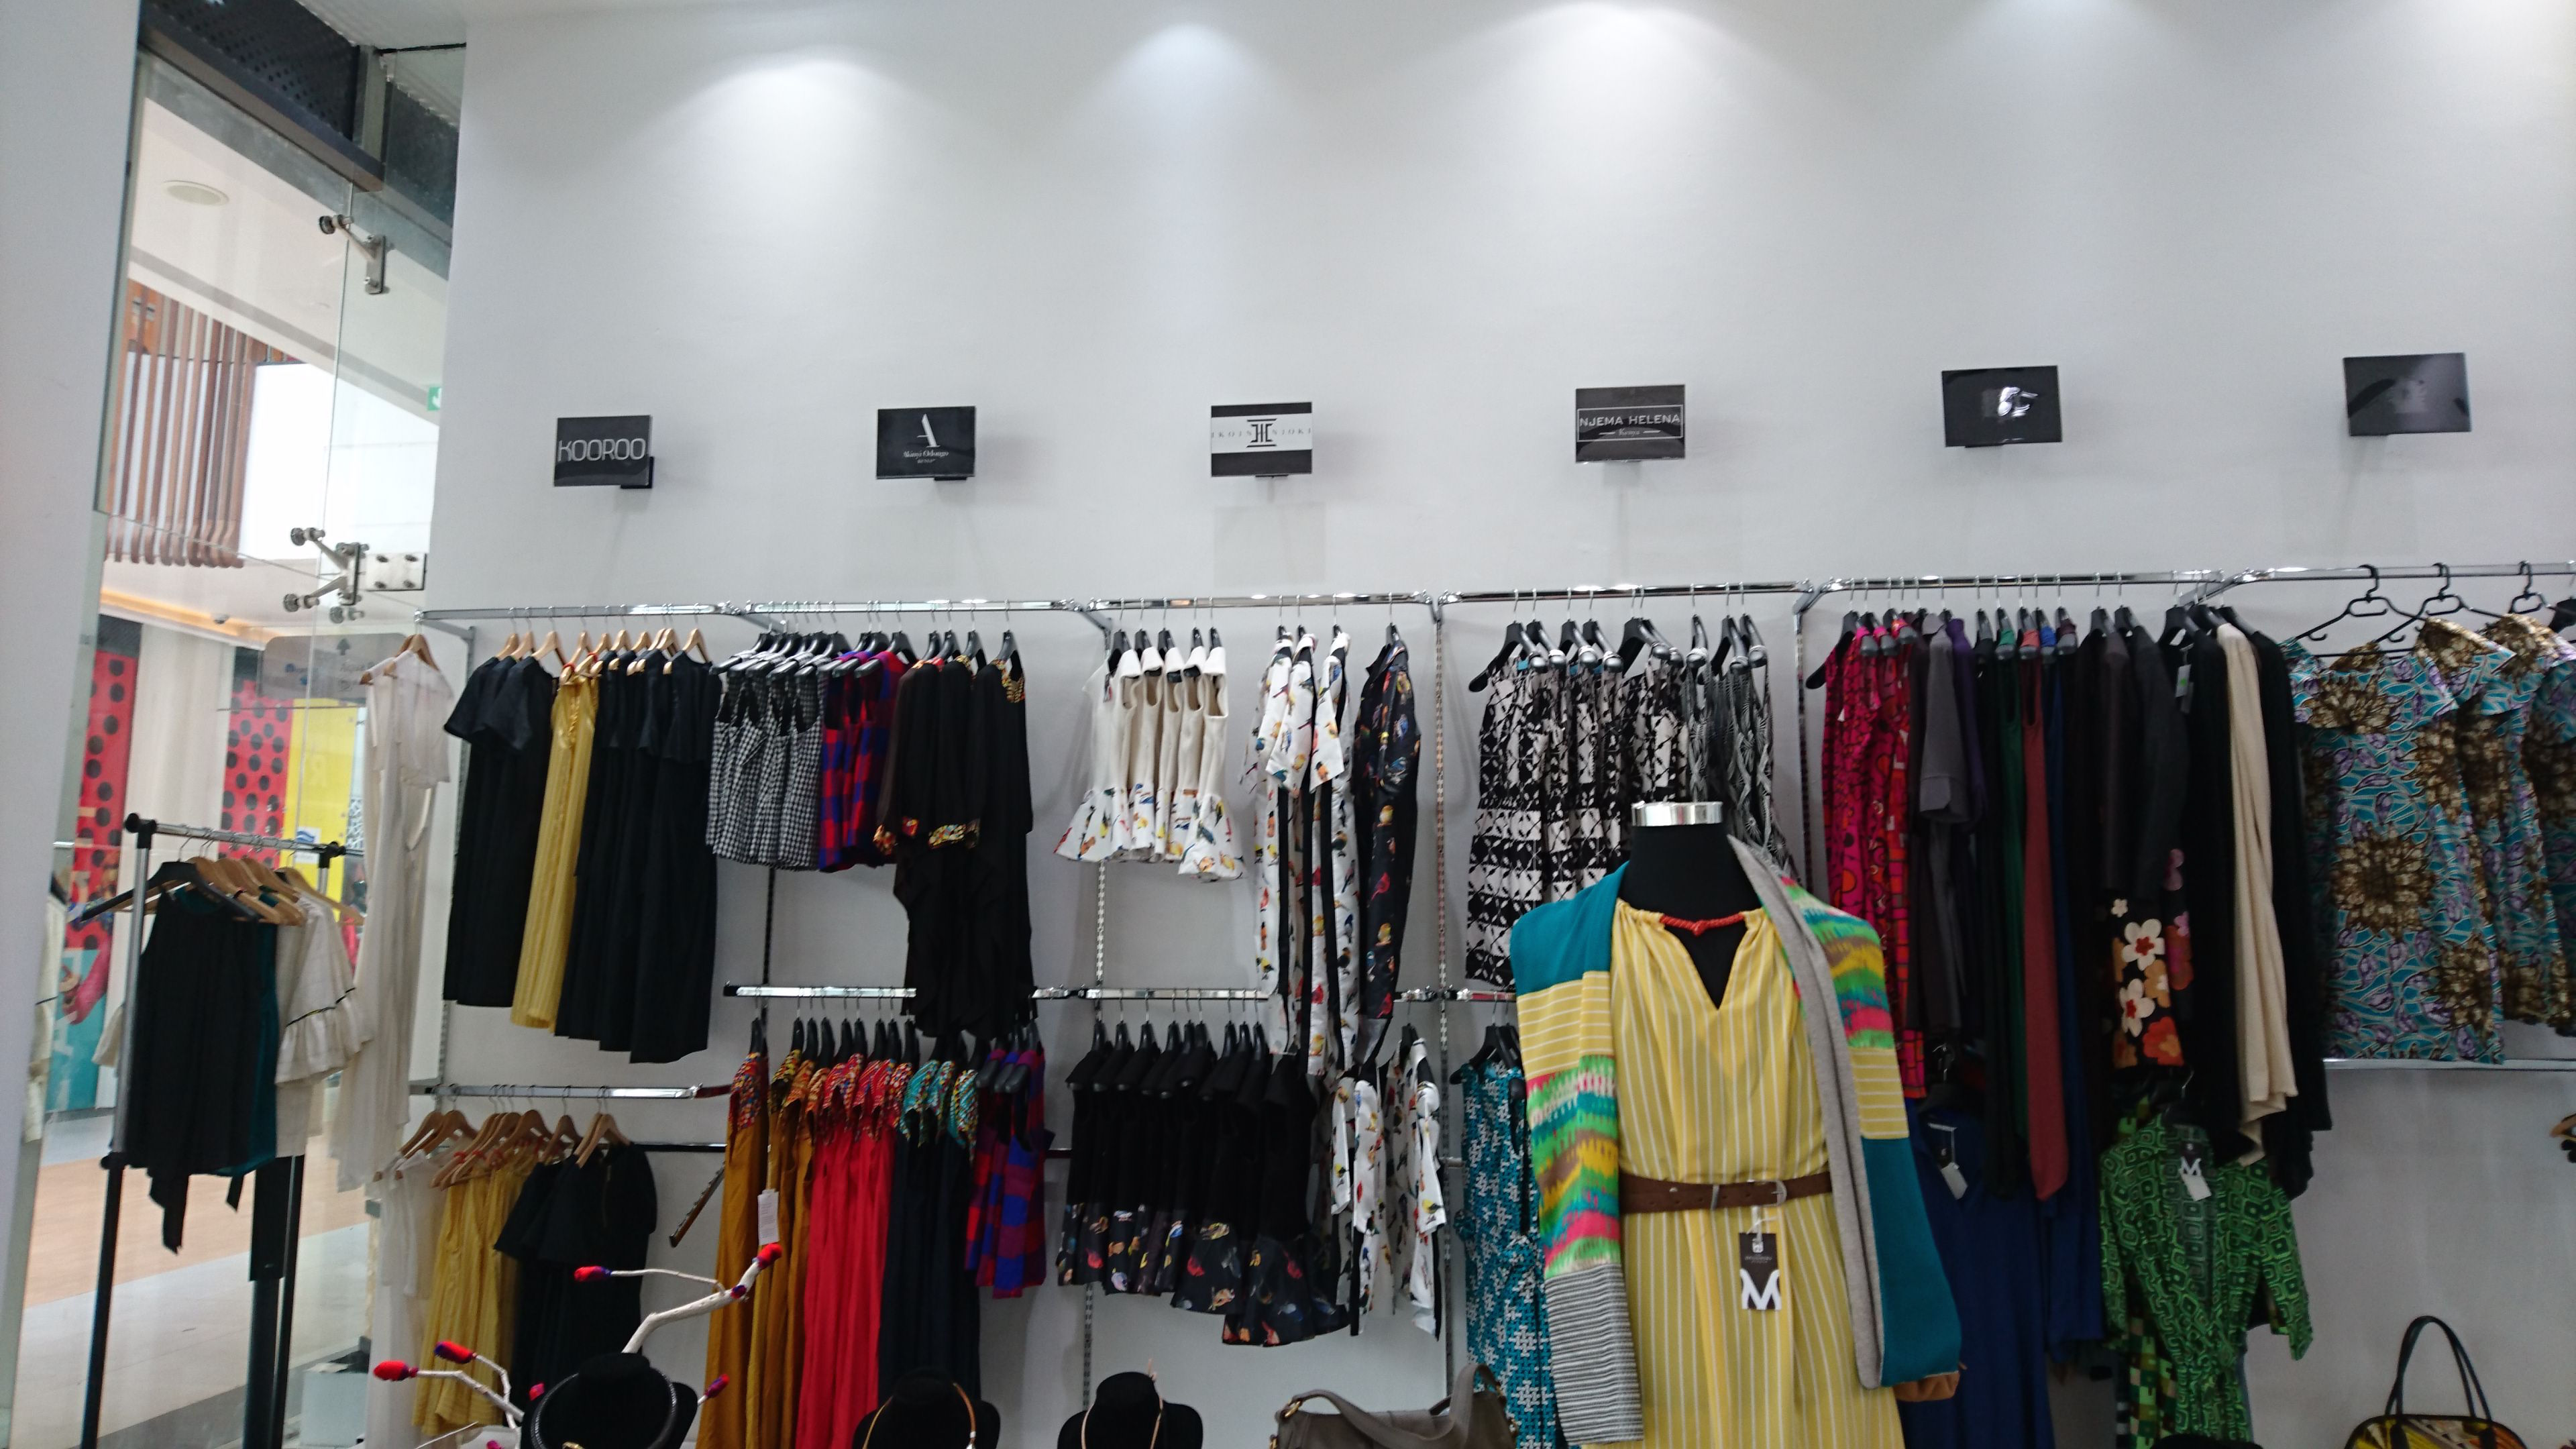 The Designers Studio Store at Two Rivers Mall - Kenya. Image subject to Copyright.